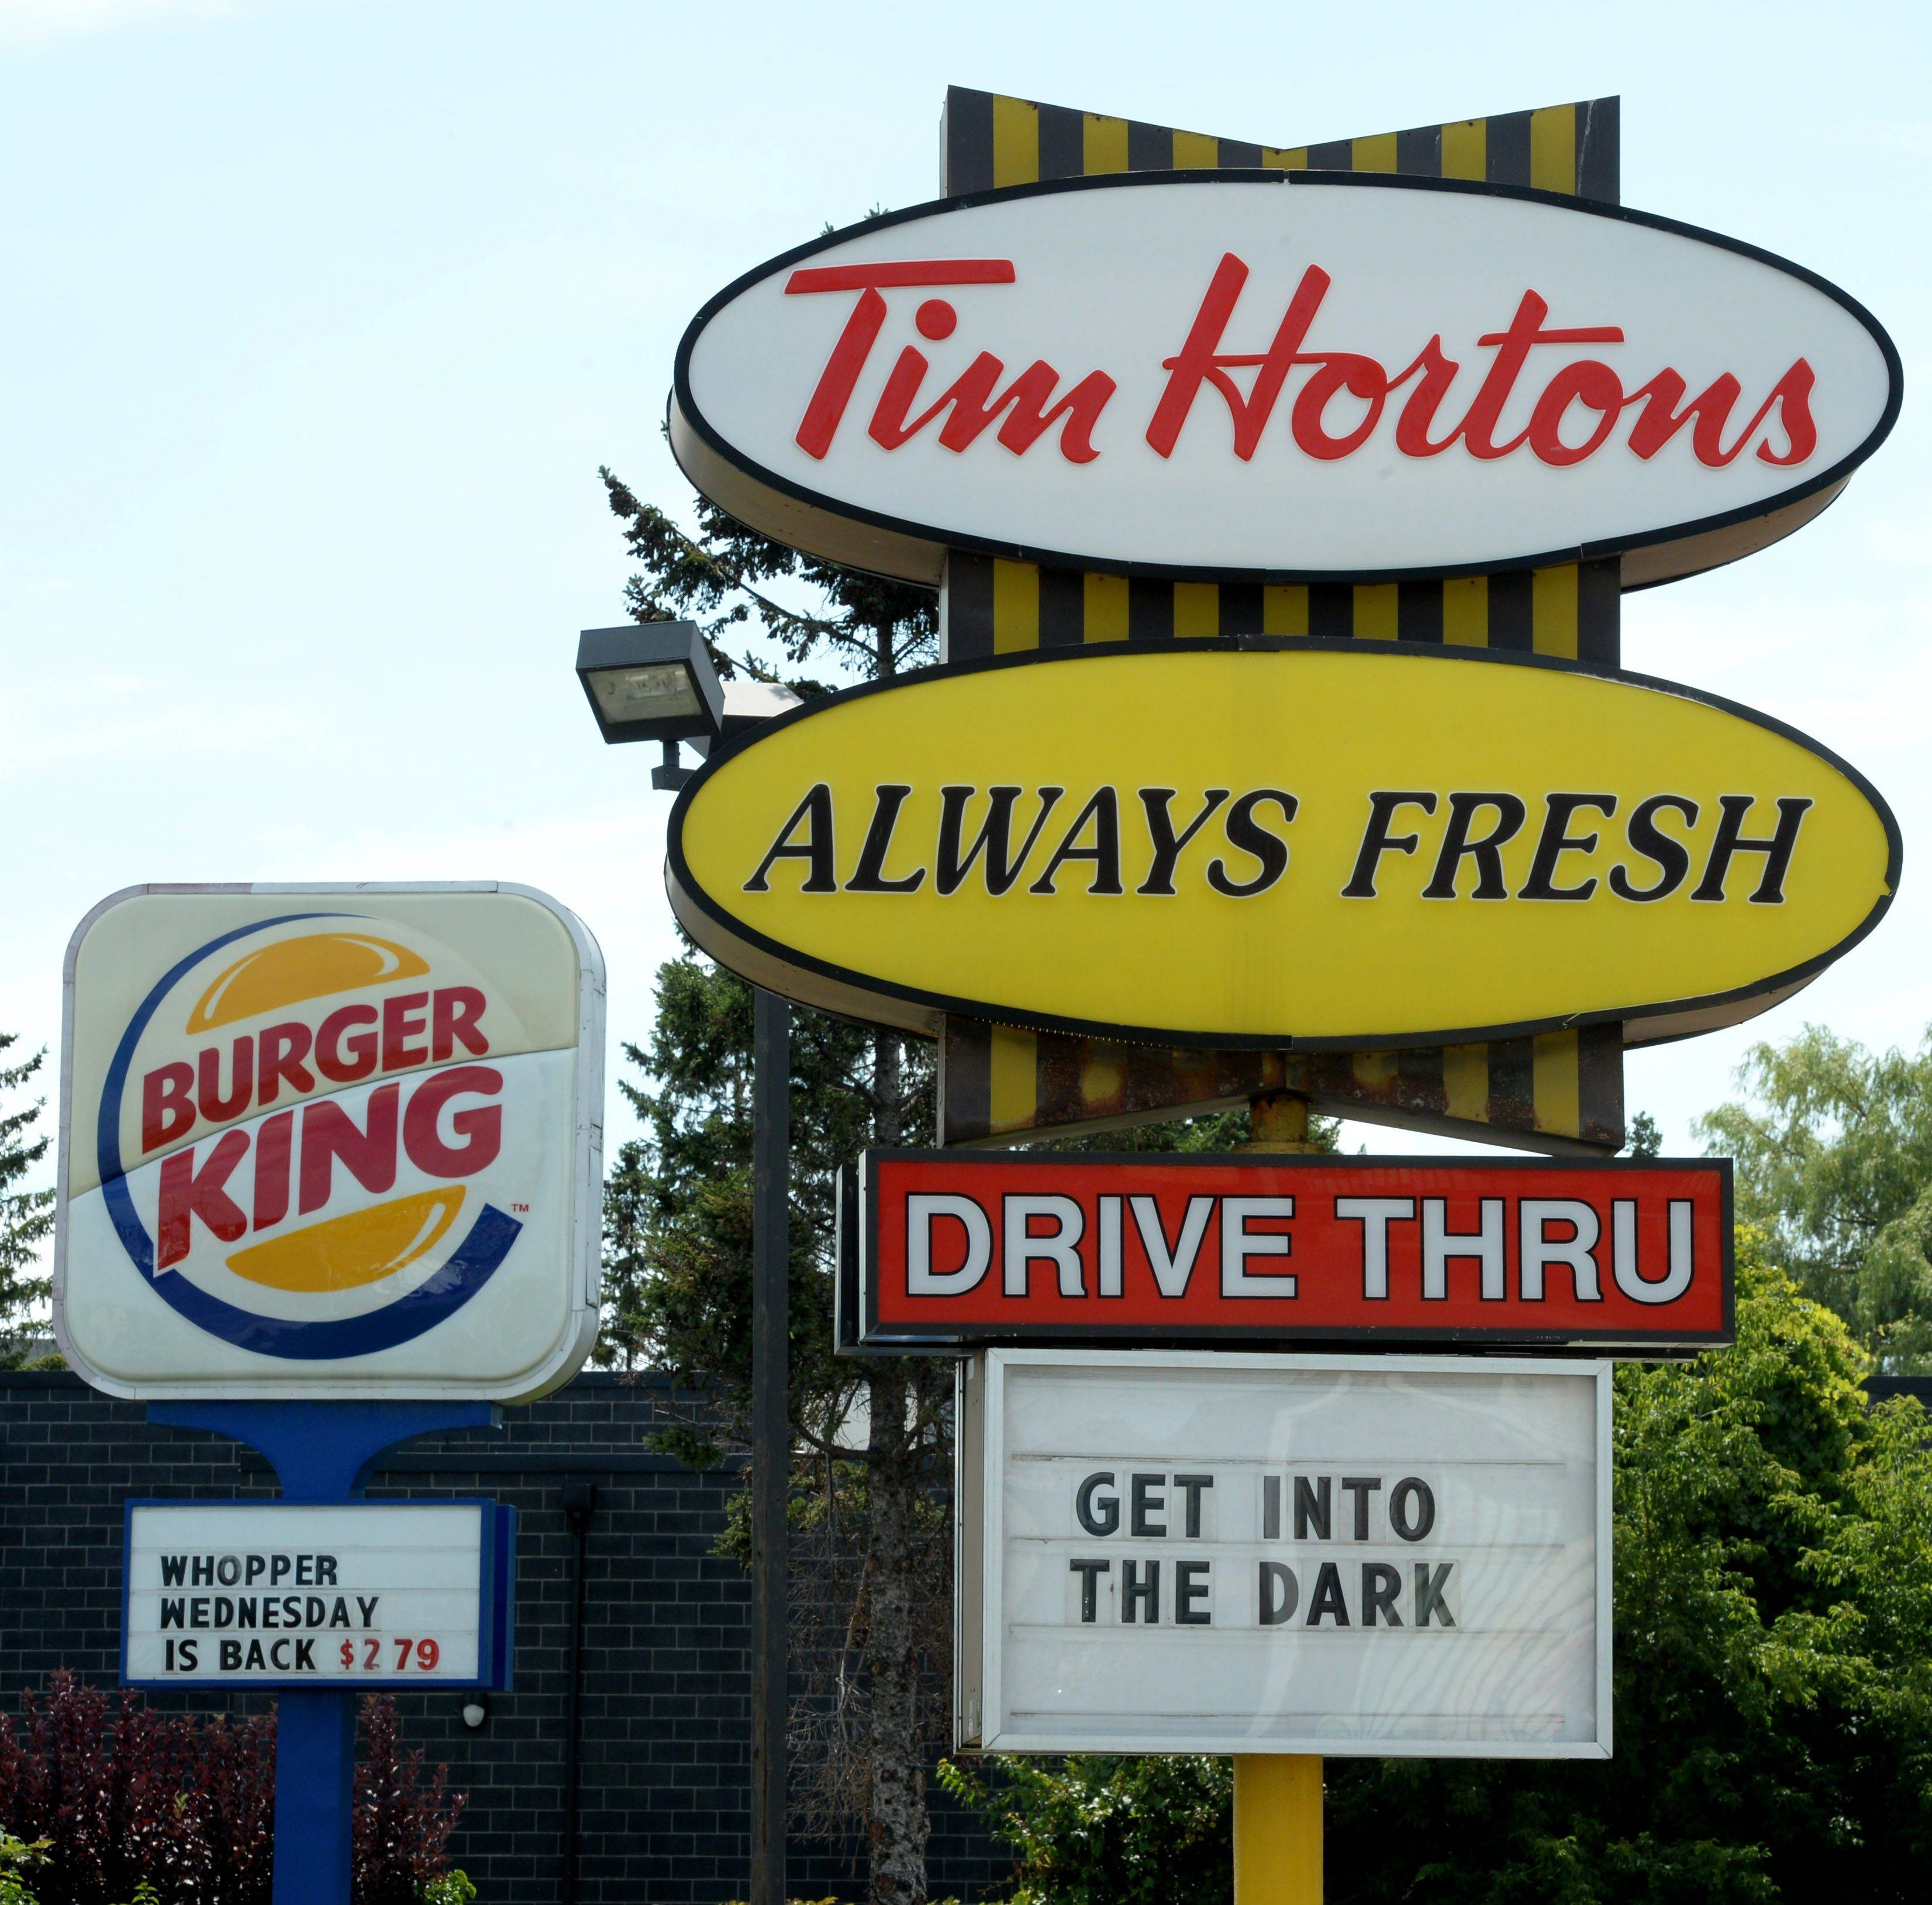 A Burger King sign and a Tim Hortons sign are displayed on St. Laurent Boulevard in Ottawa, Canada. Canada's iconic coffee chain, Tim Hortons, and Miami-based Burger King say they will join forces but will operate as independent brands to form the world's third-largest quick service restaurant company.